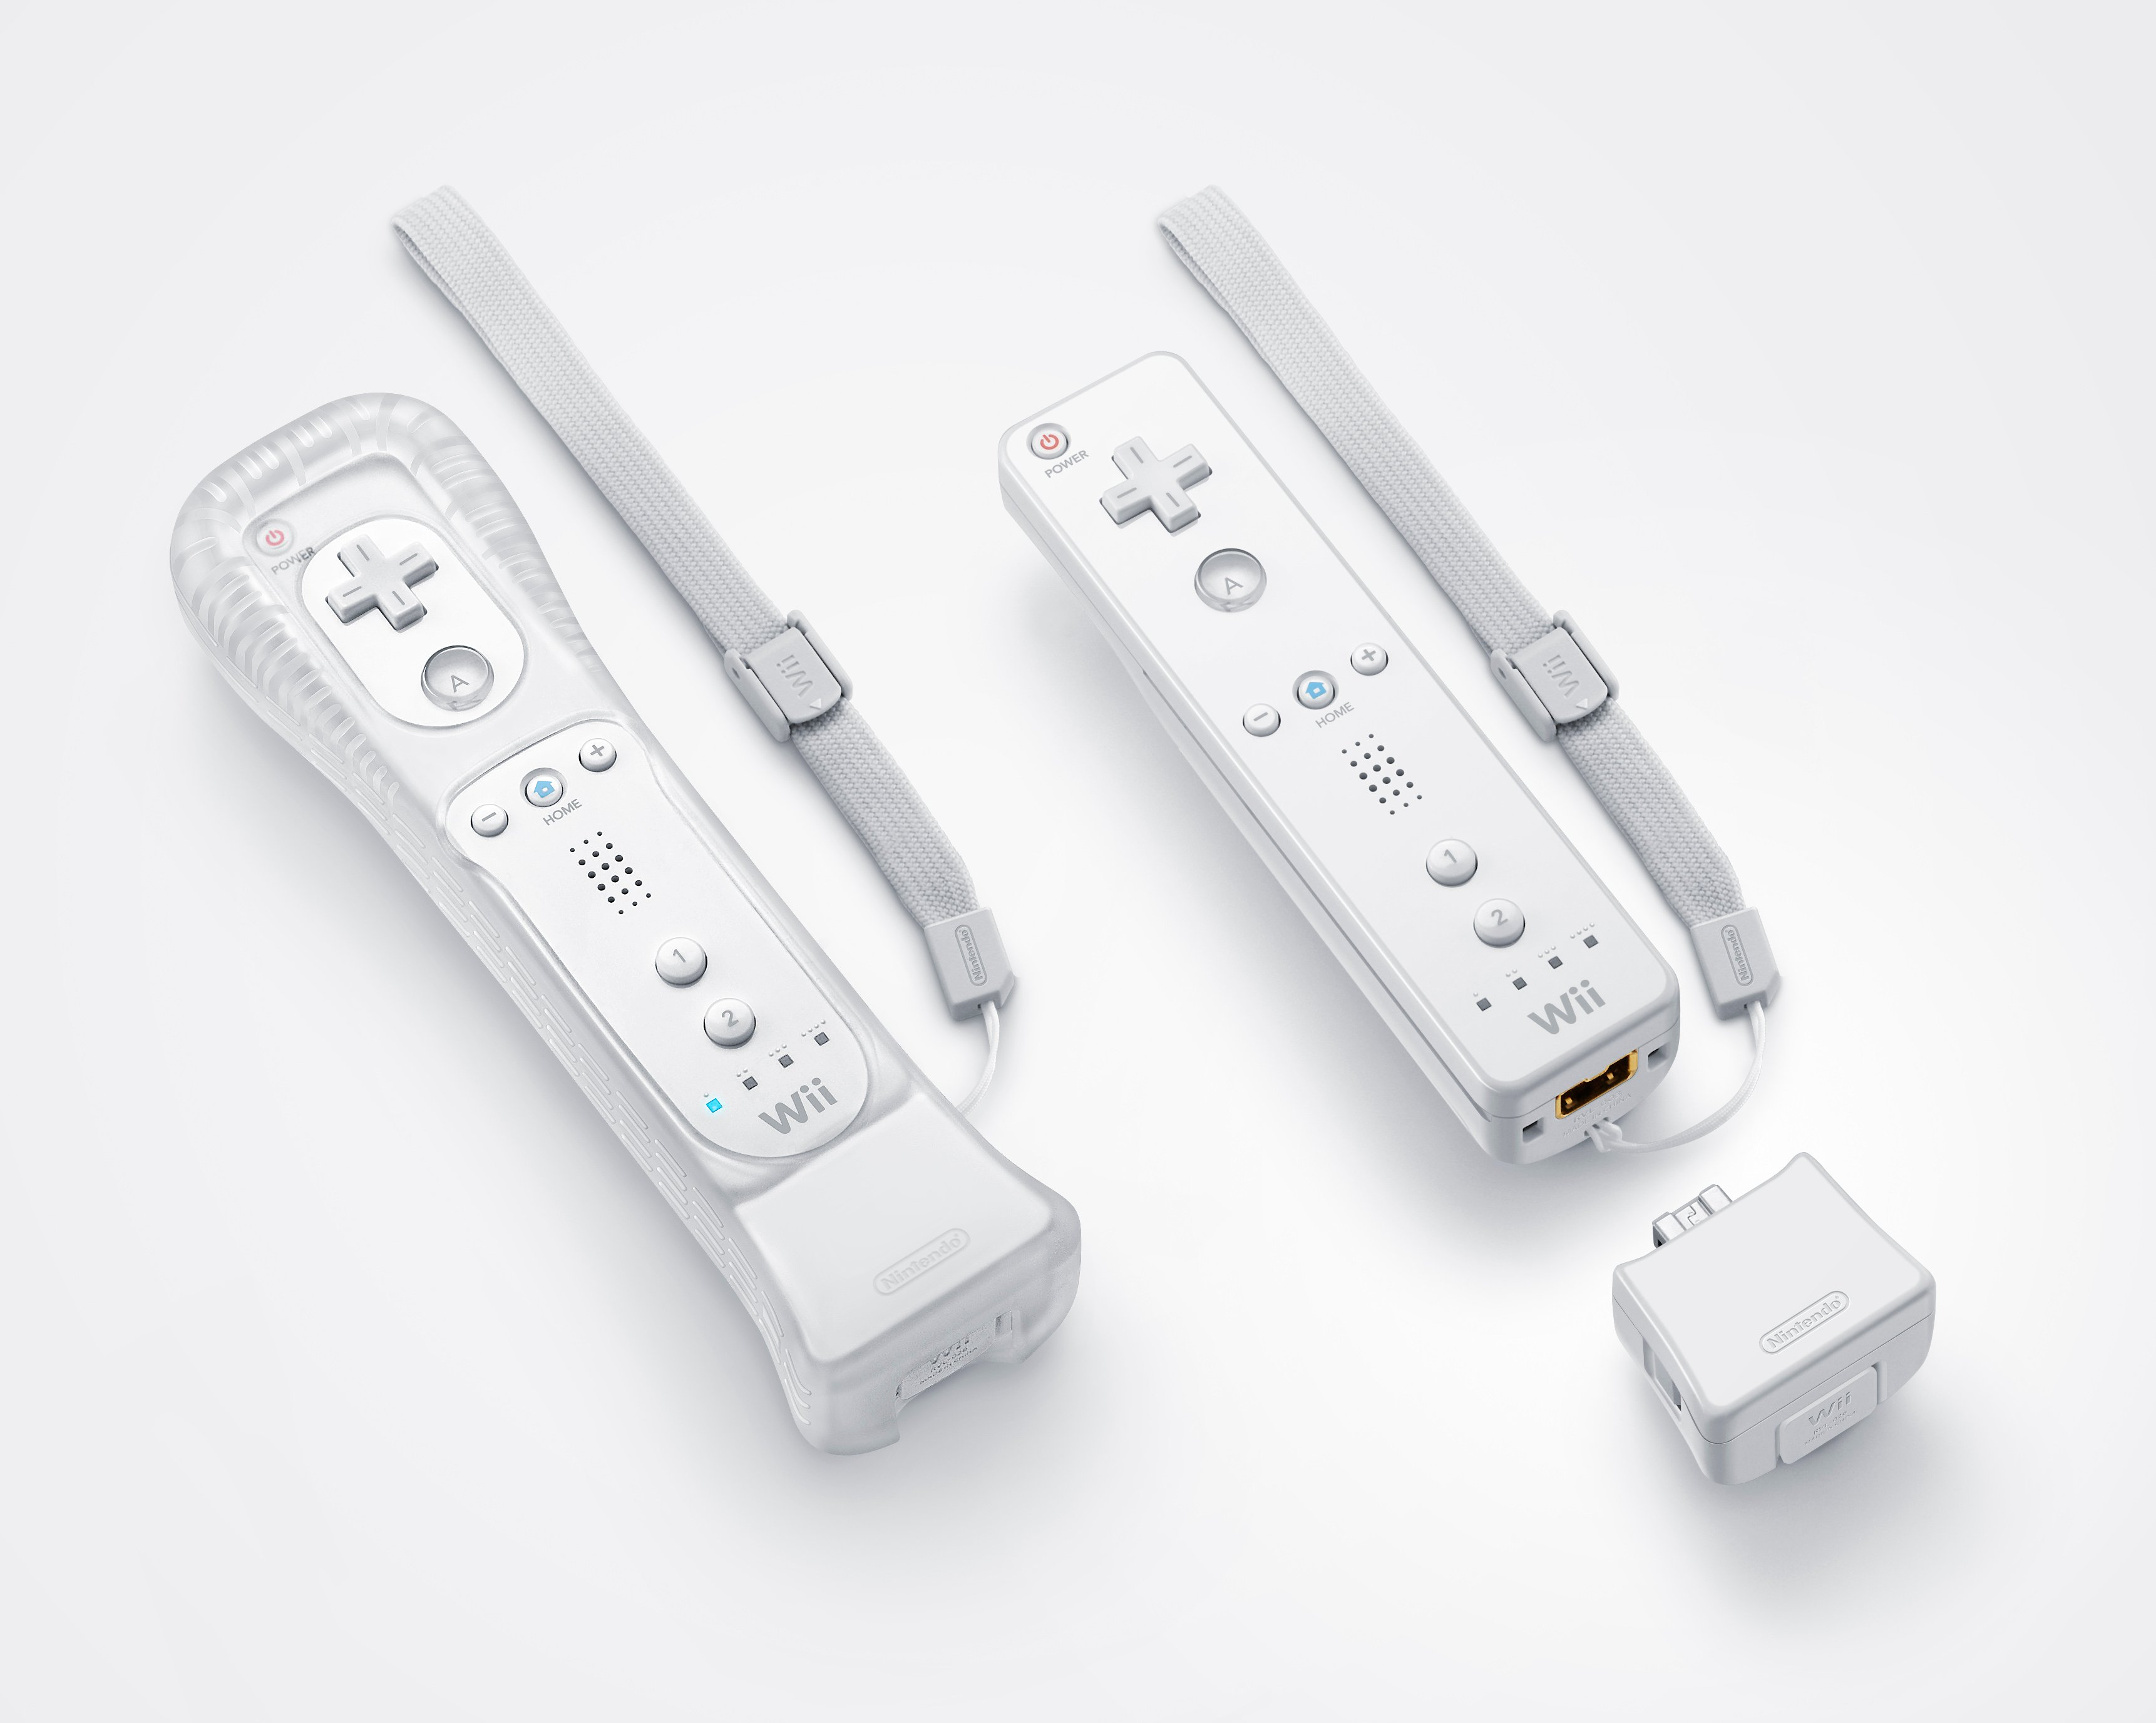 6DOF Positional Tracking with the Wiimote